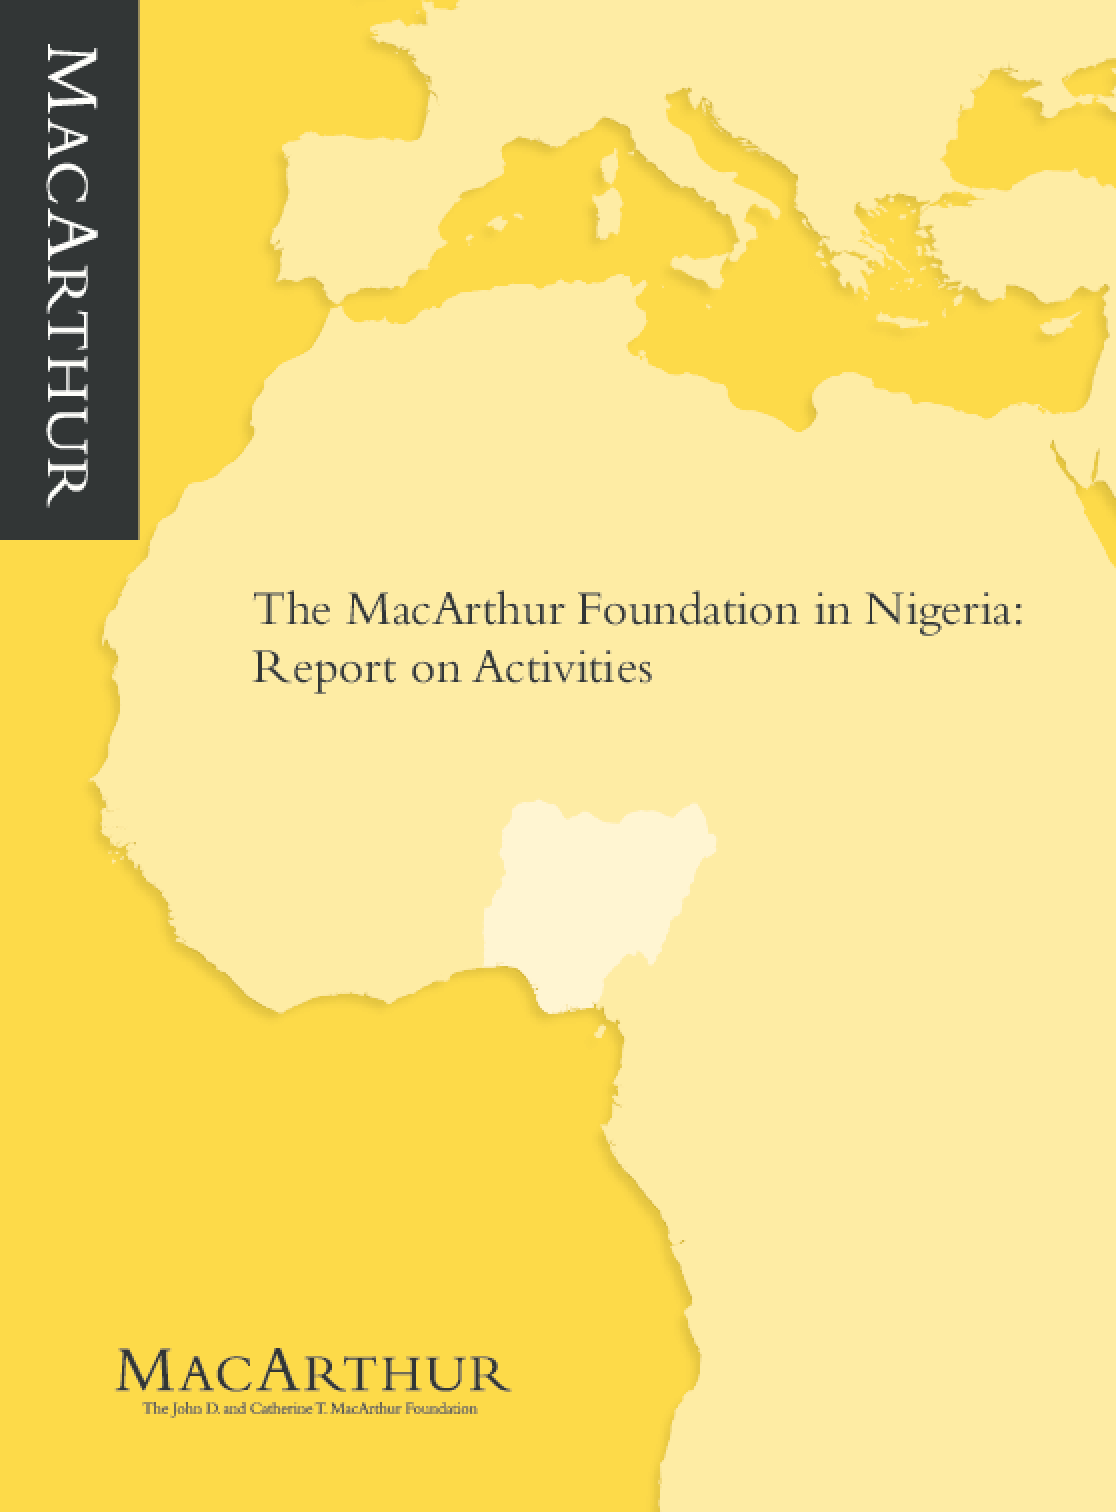 The MacArthur Foundation in Nigeria: Report on Activities 2009